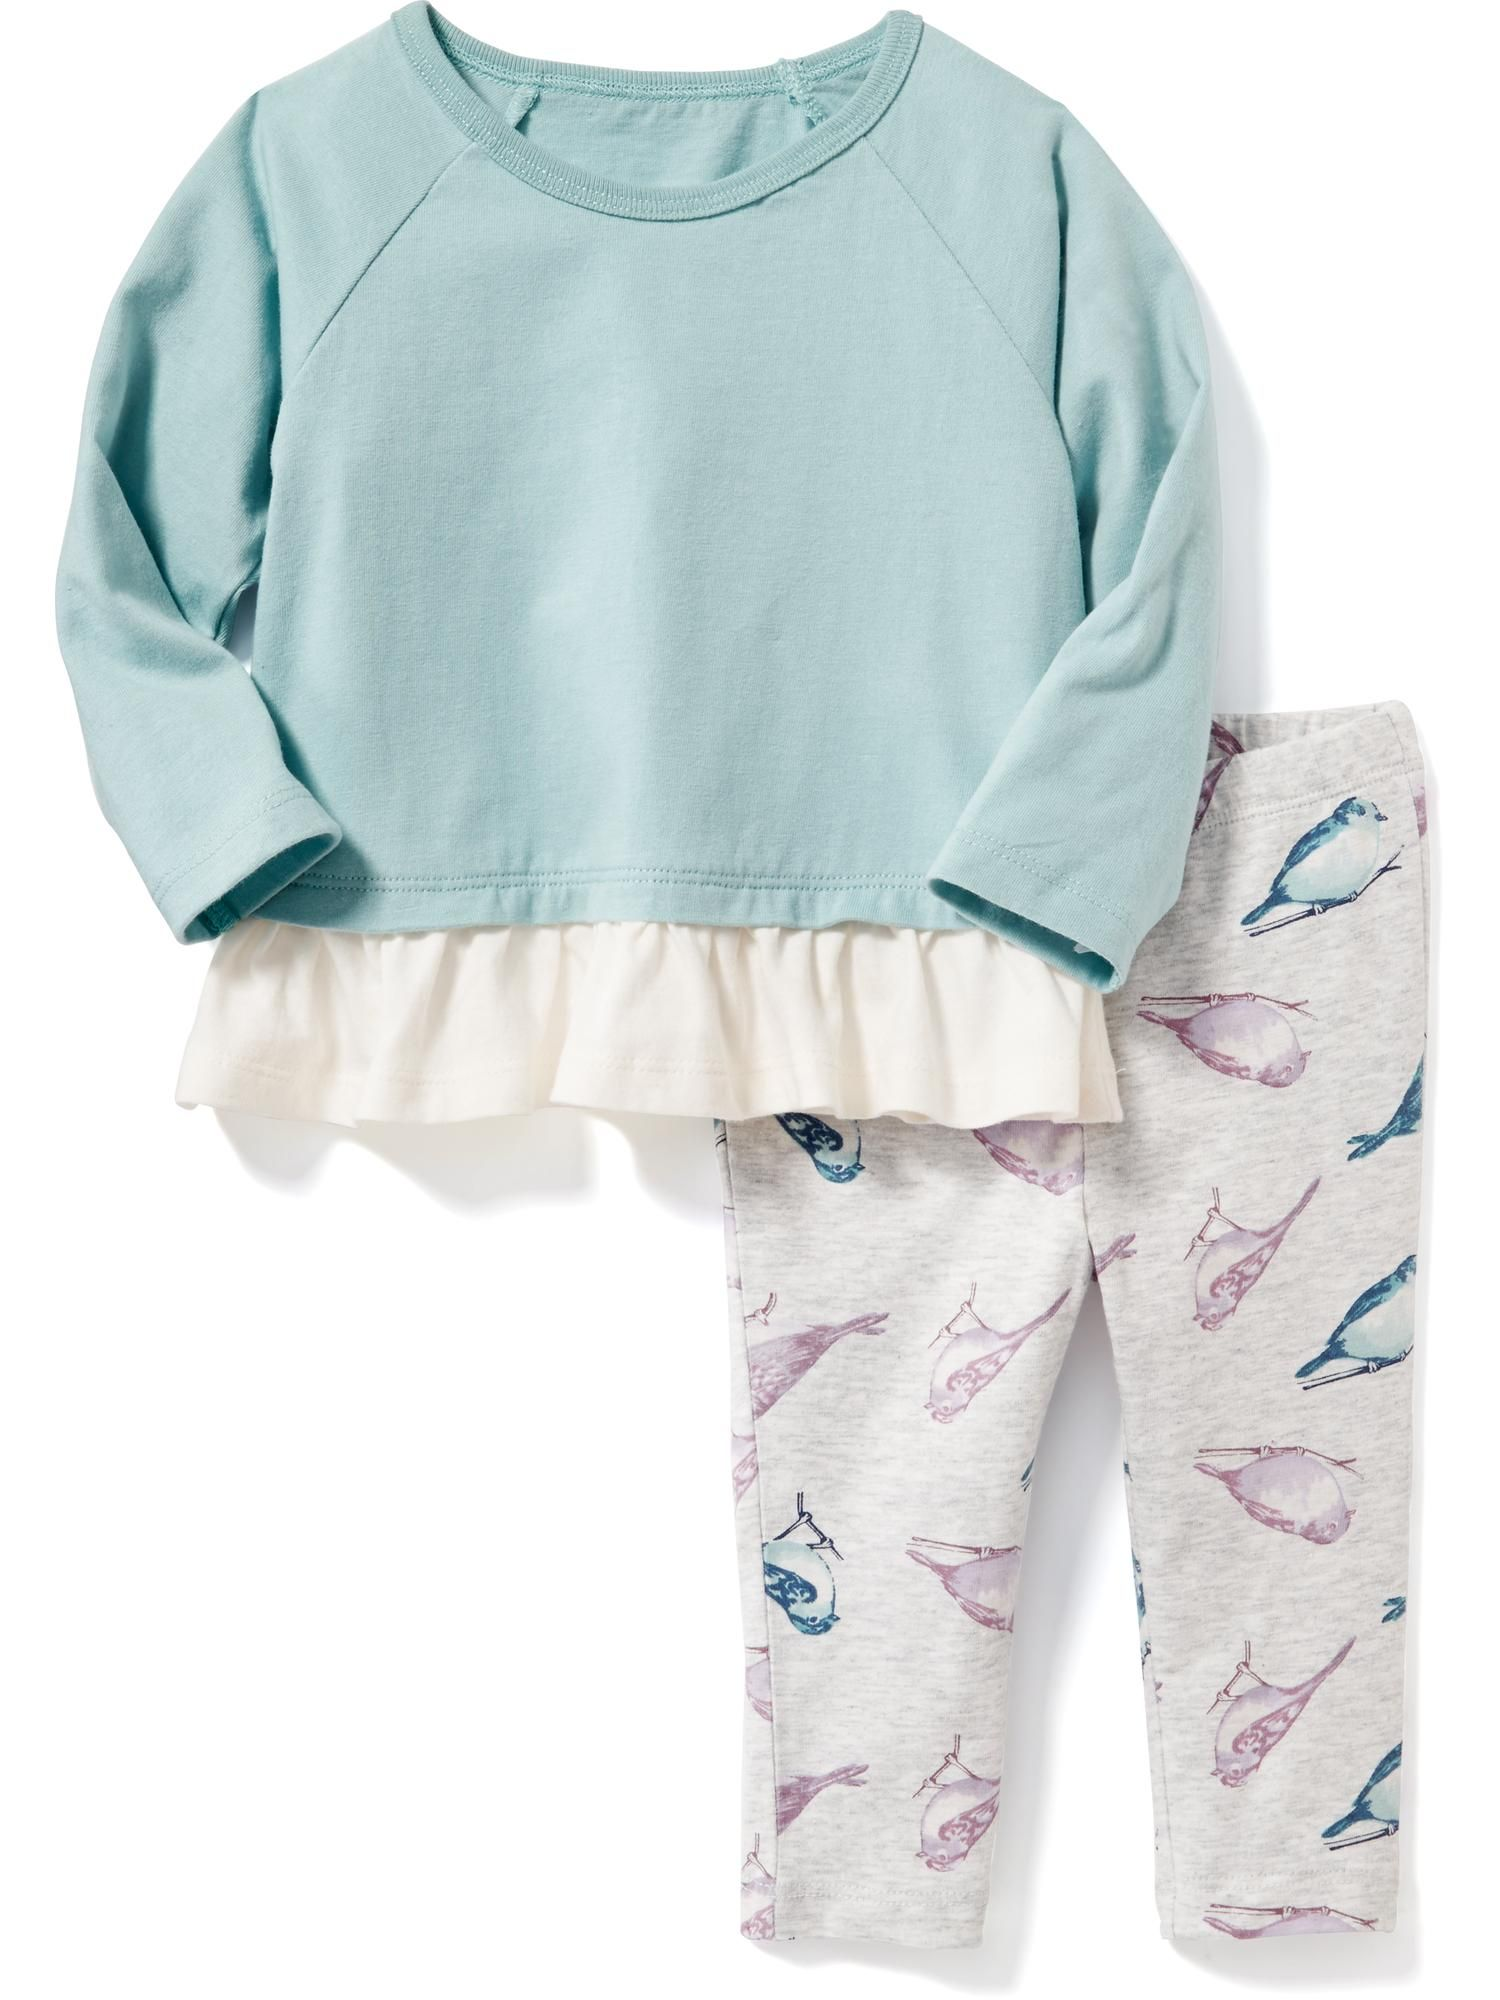 Patterned 2 Piece Set for Baby Old Navy birds